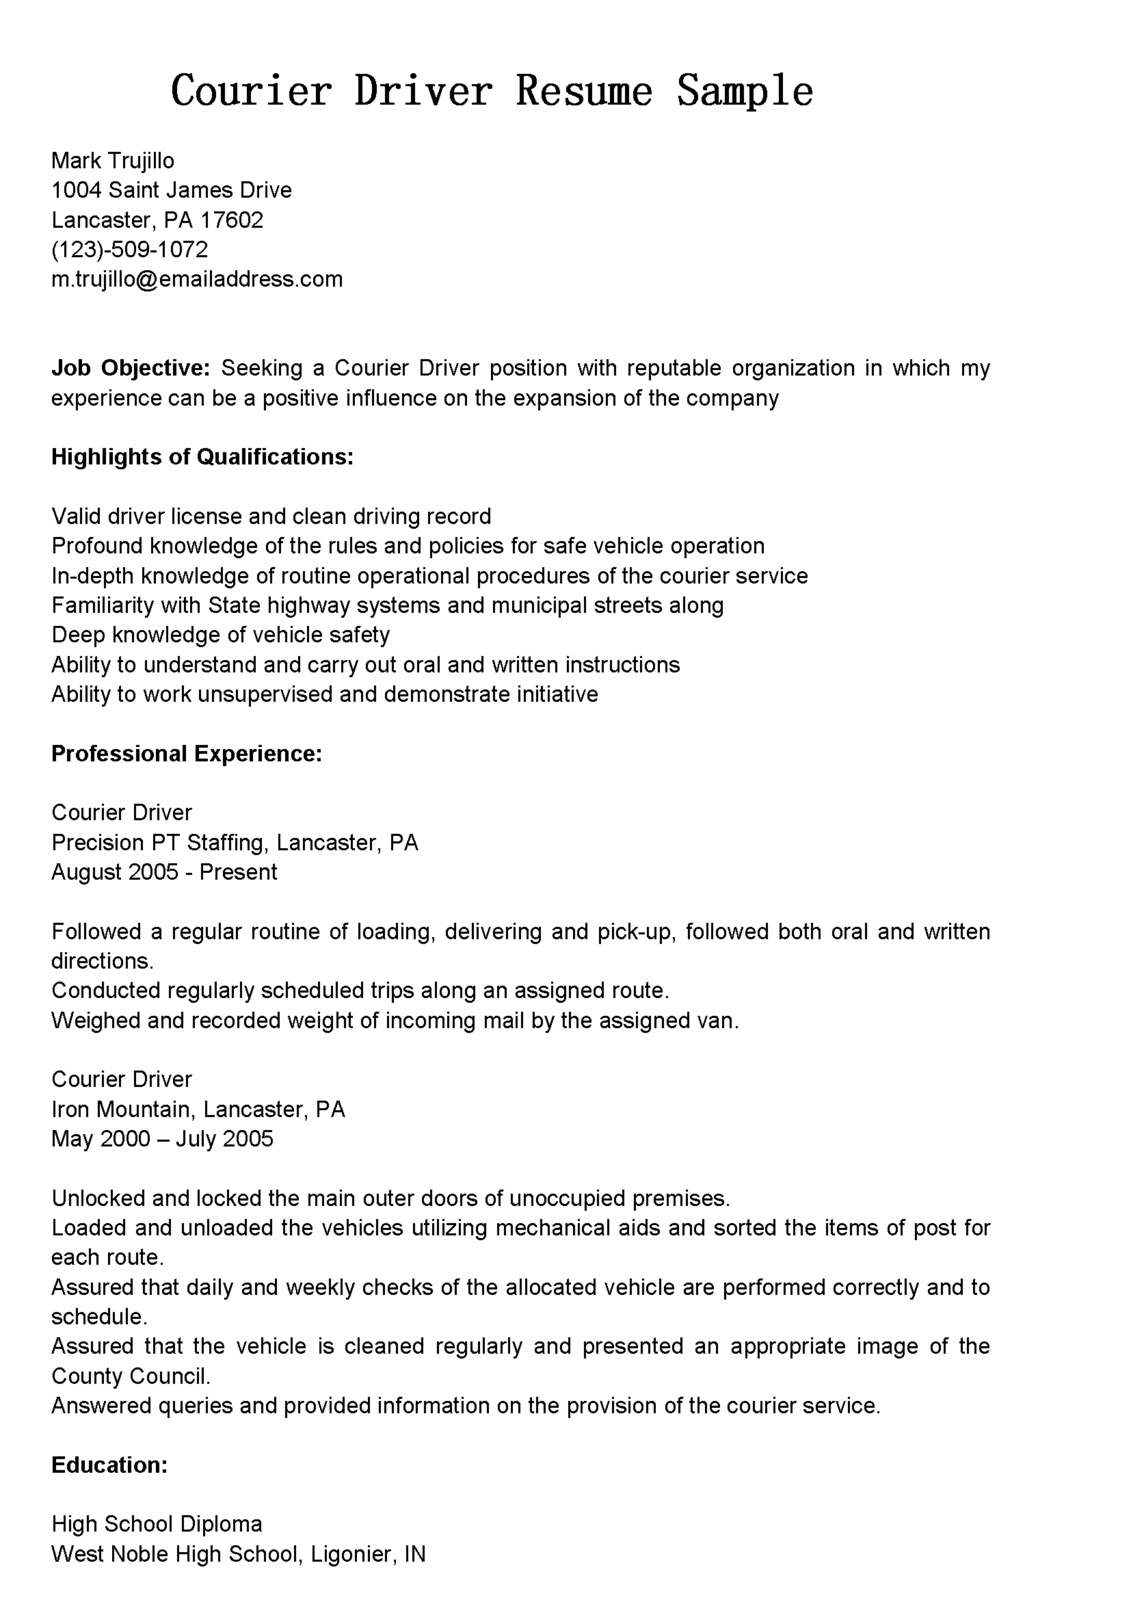 Cdl Resume Objective Examples Driver Resumes Courier Driver Resume Sample